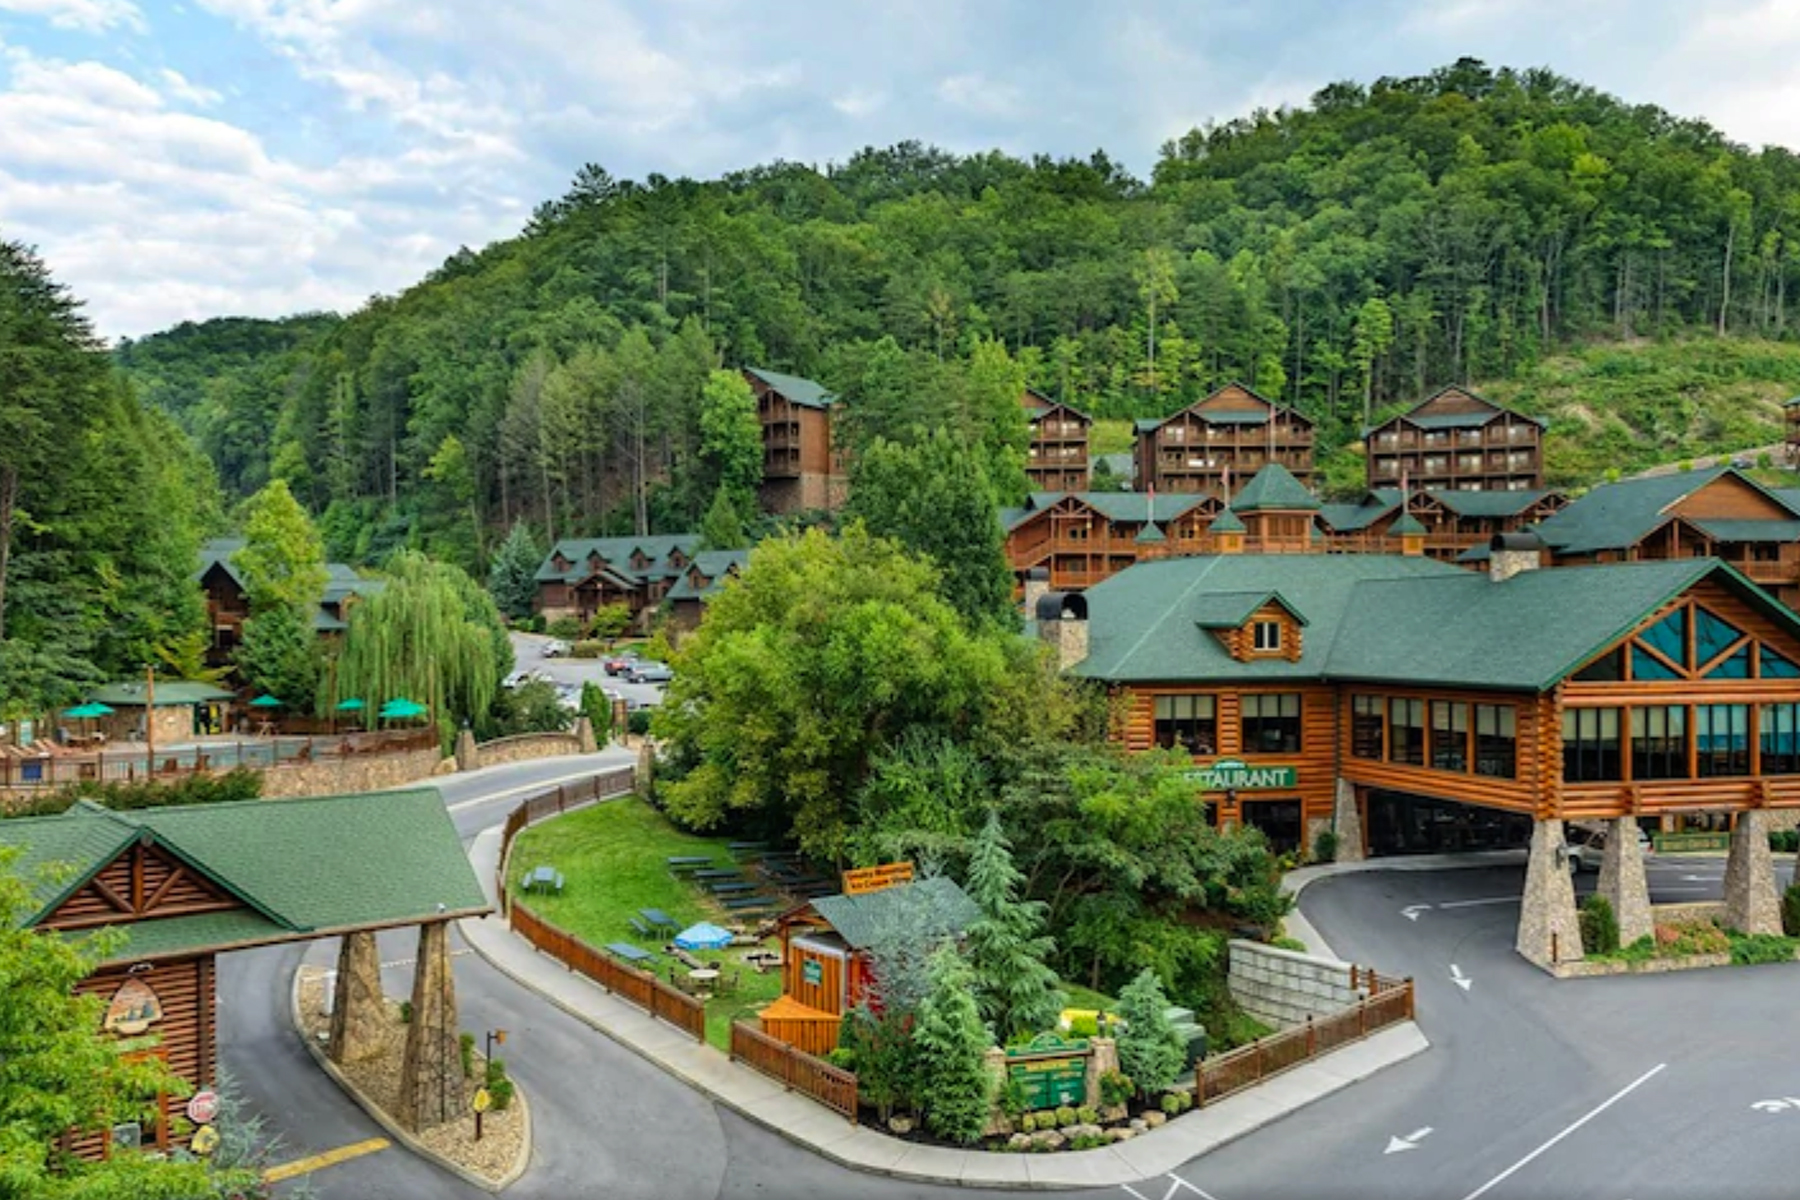 Westgate Smoky Mountain Resort in Gatlinburg, TN